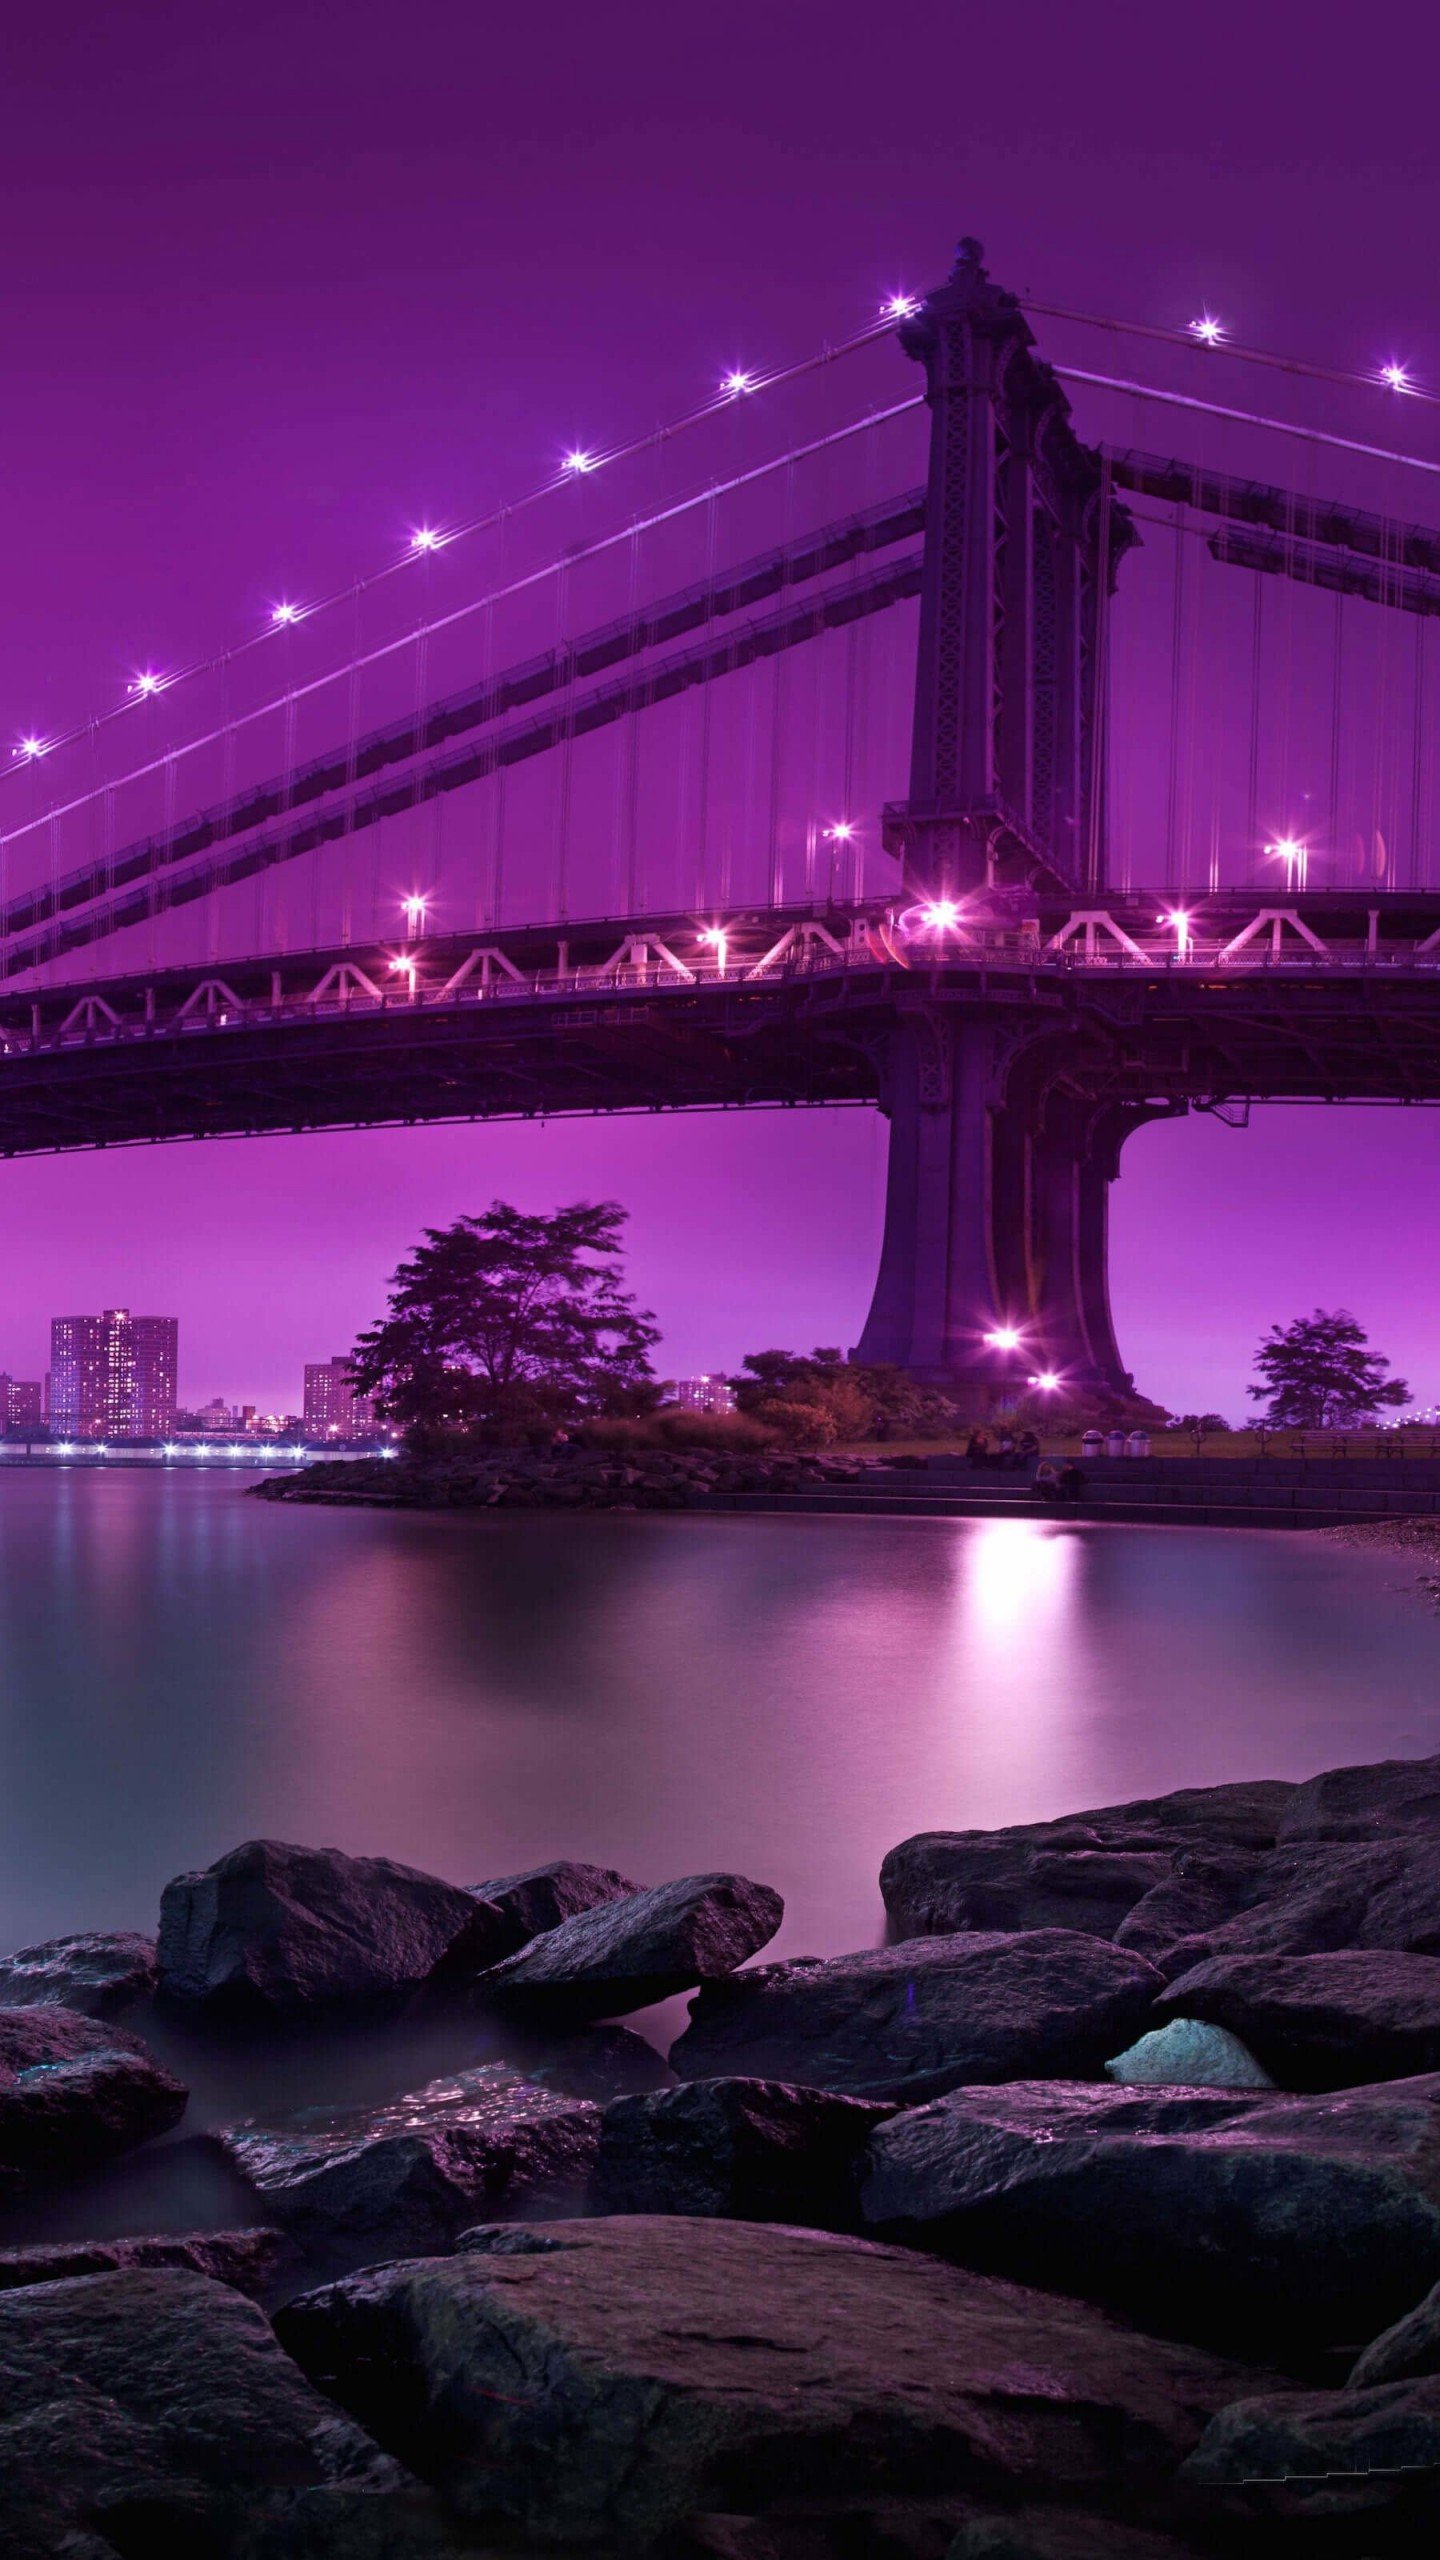 Brooklyn Bridge by night Wallpaper for Google Nexus 6